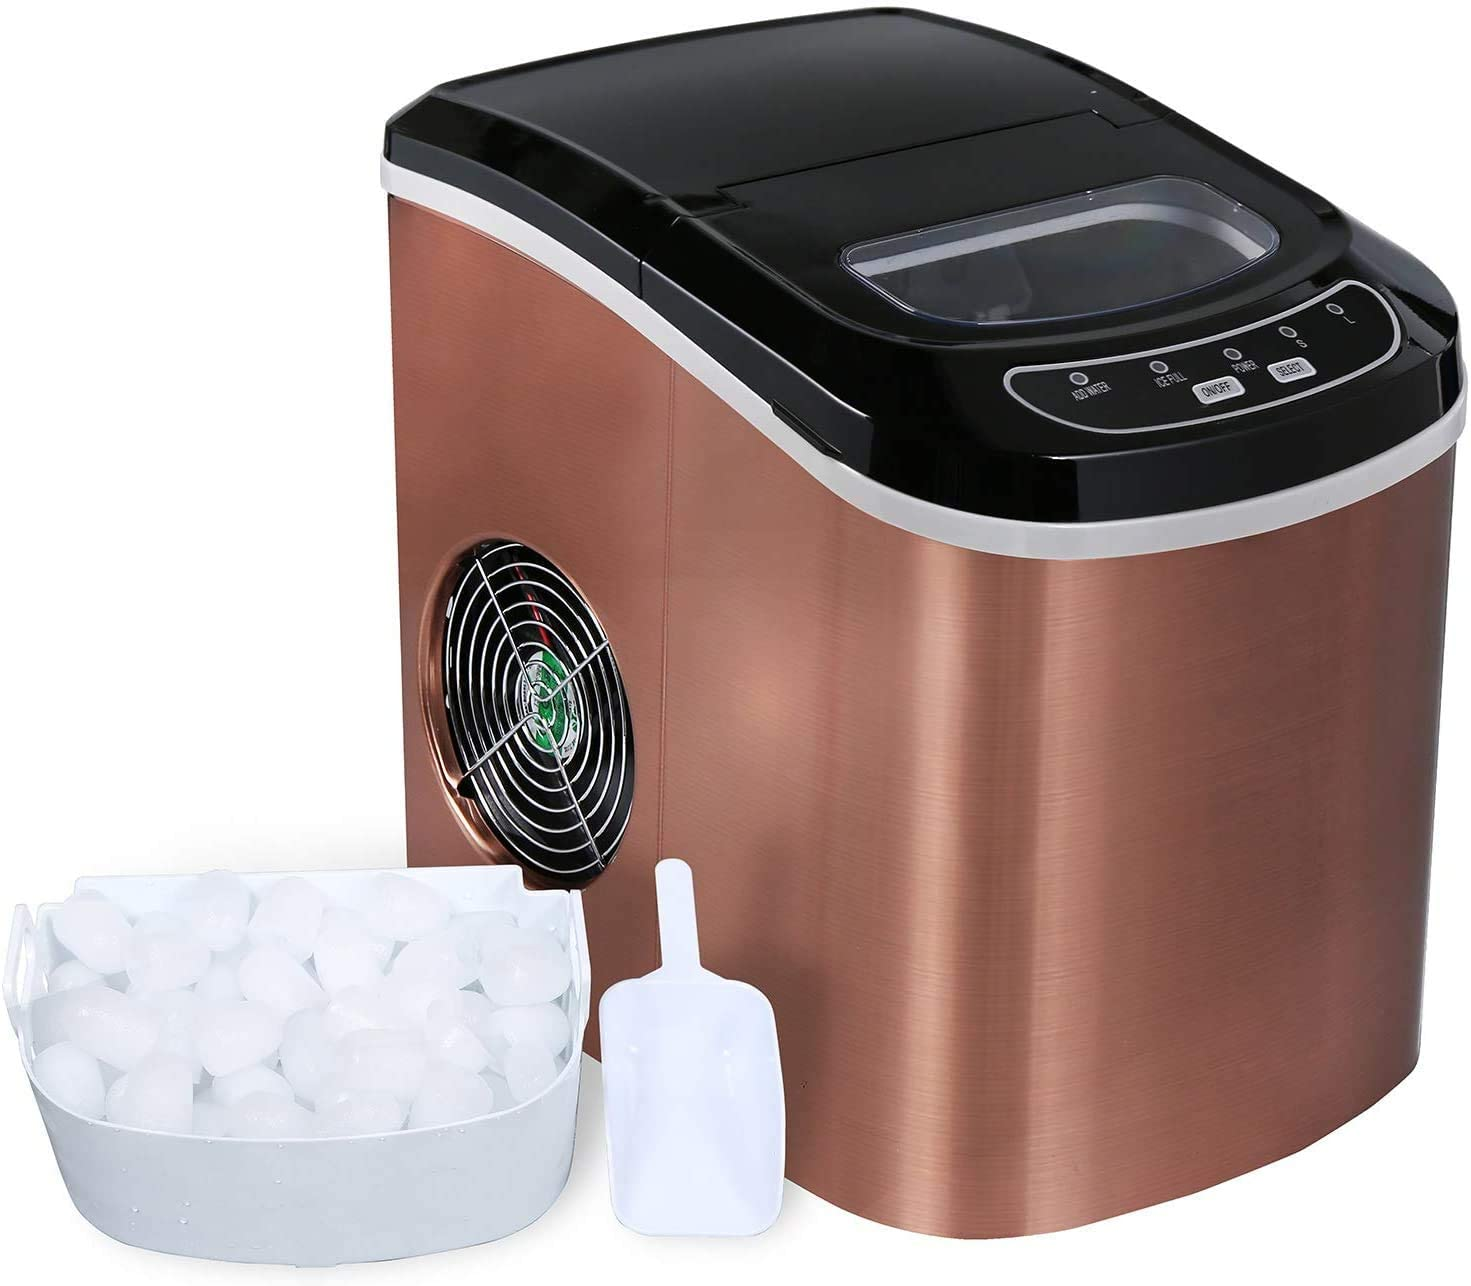 Ice Maker Machine Countertop, Ice Cubes Ready in 6 Mins, Make 26 lbs Ice in 24 Hrs with 2 Size (S/L), Compact Electric Ice Maker with Ice Scoop and Basket (COPPER)